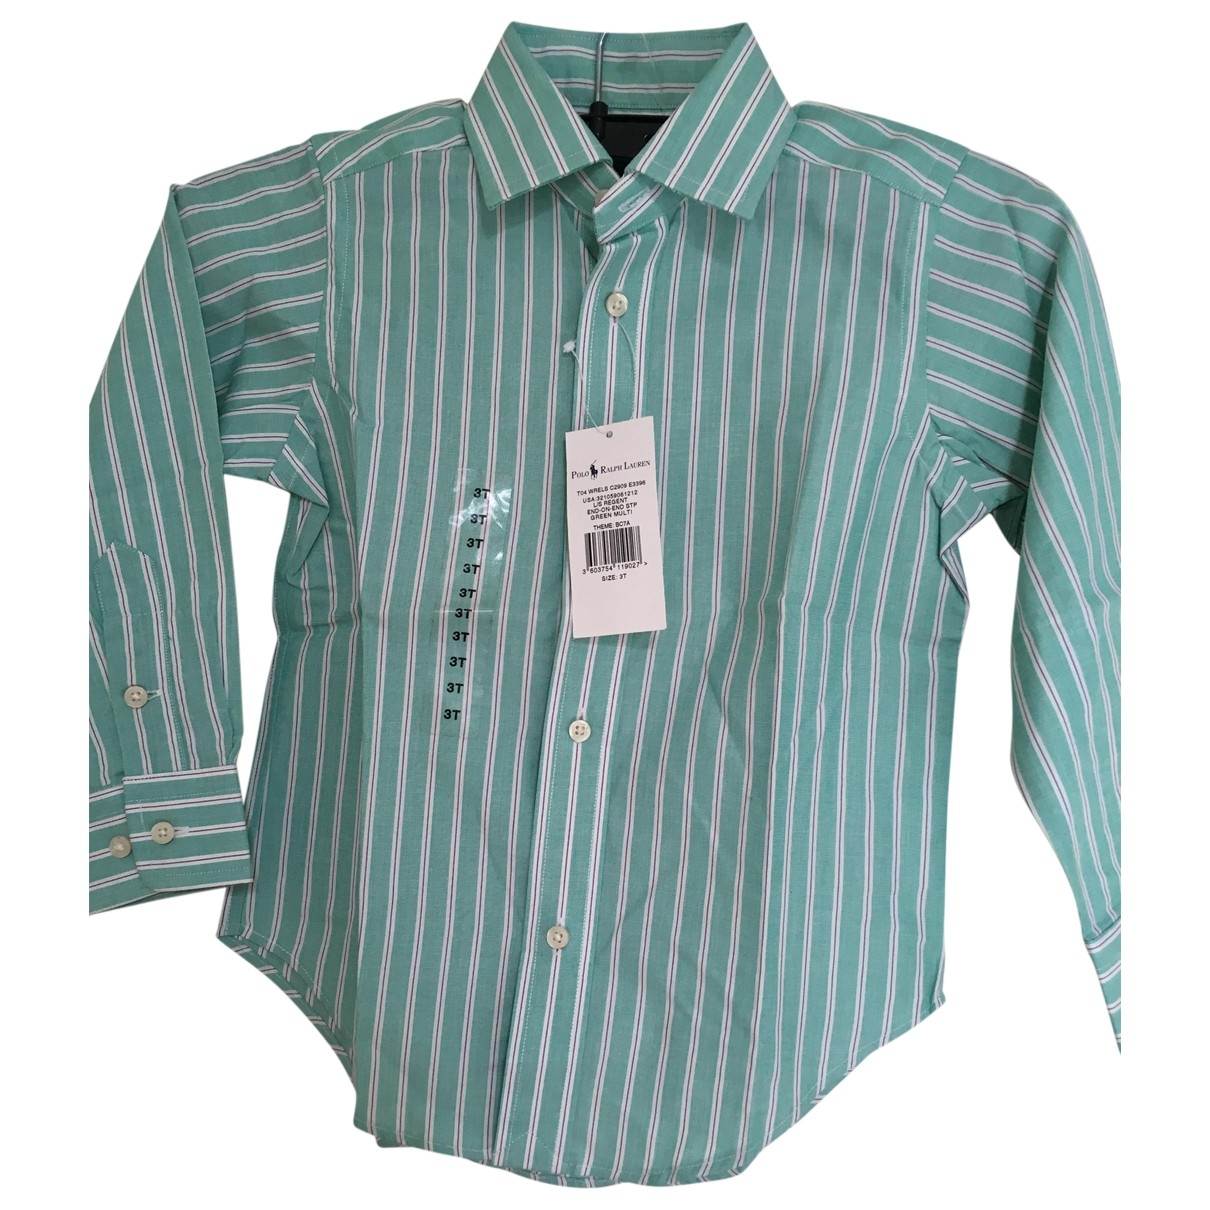 Polo Ralph Lauren \N Green Cotton  top for Kids 3 years - up to 98cm FR